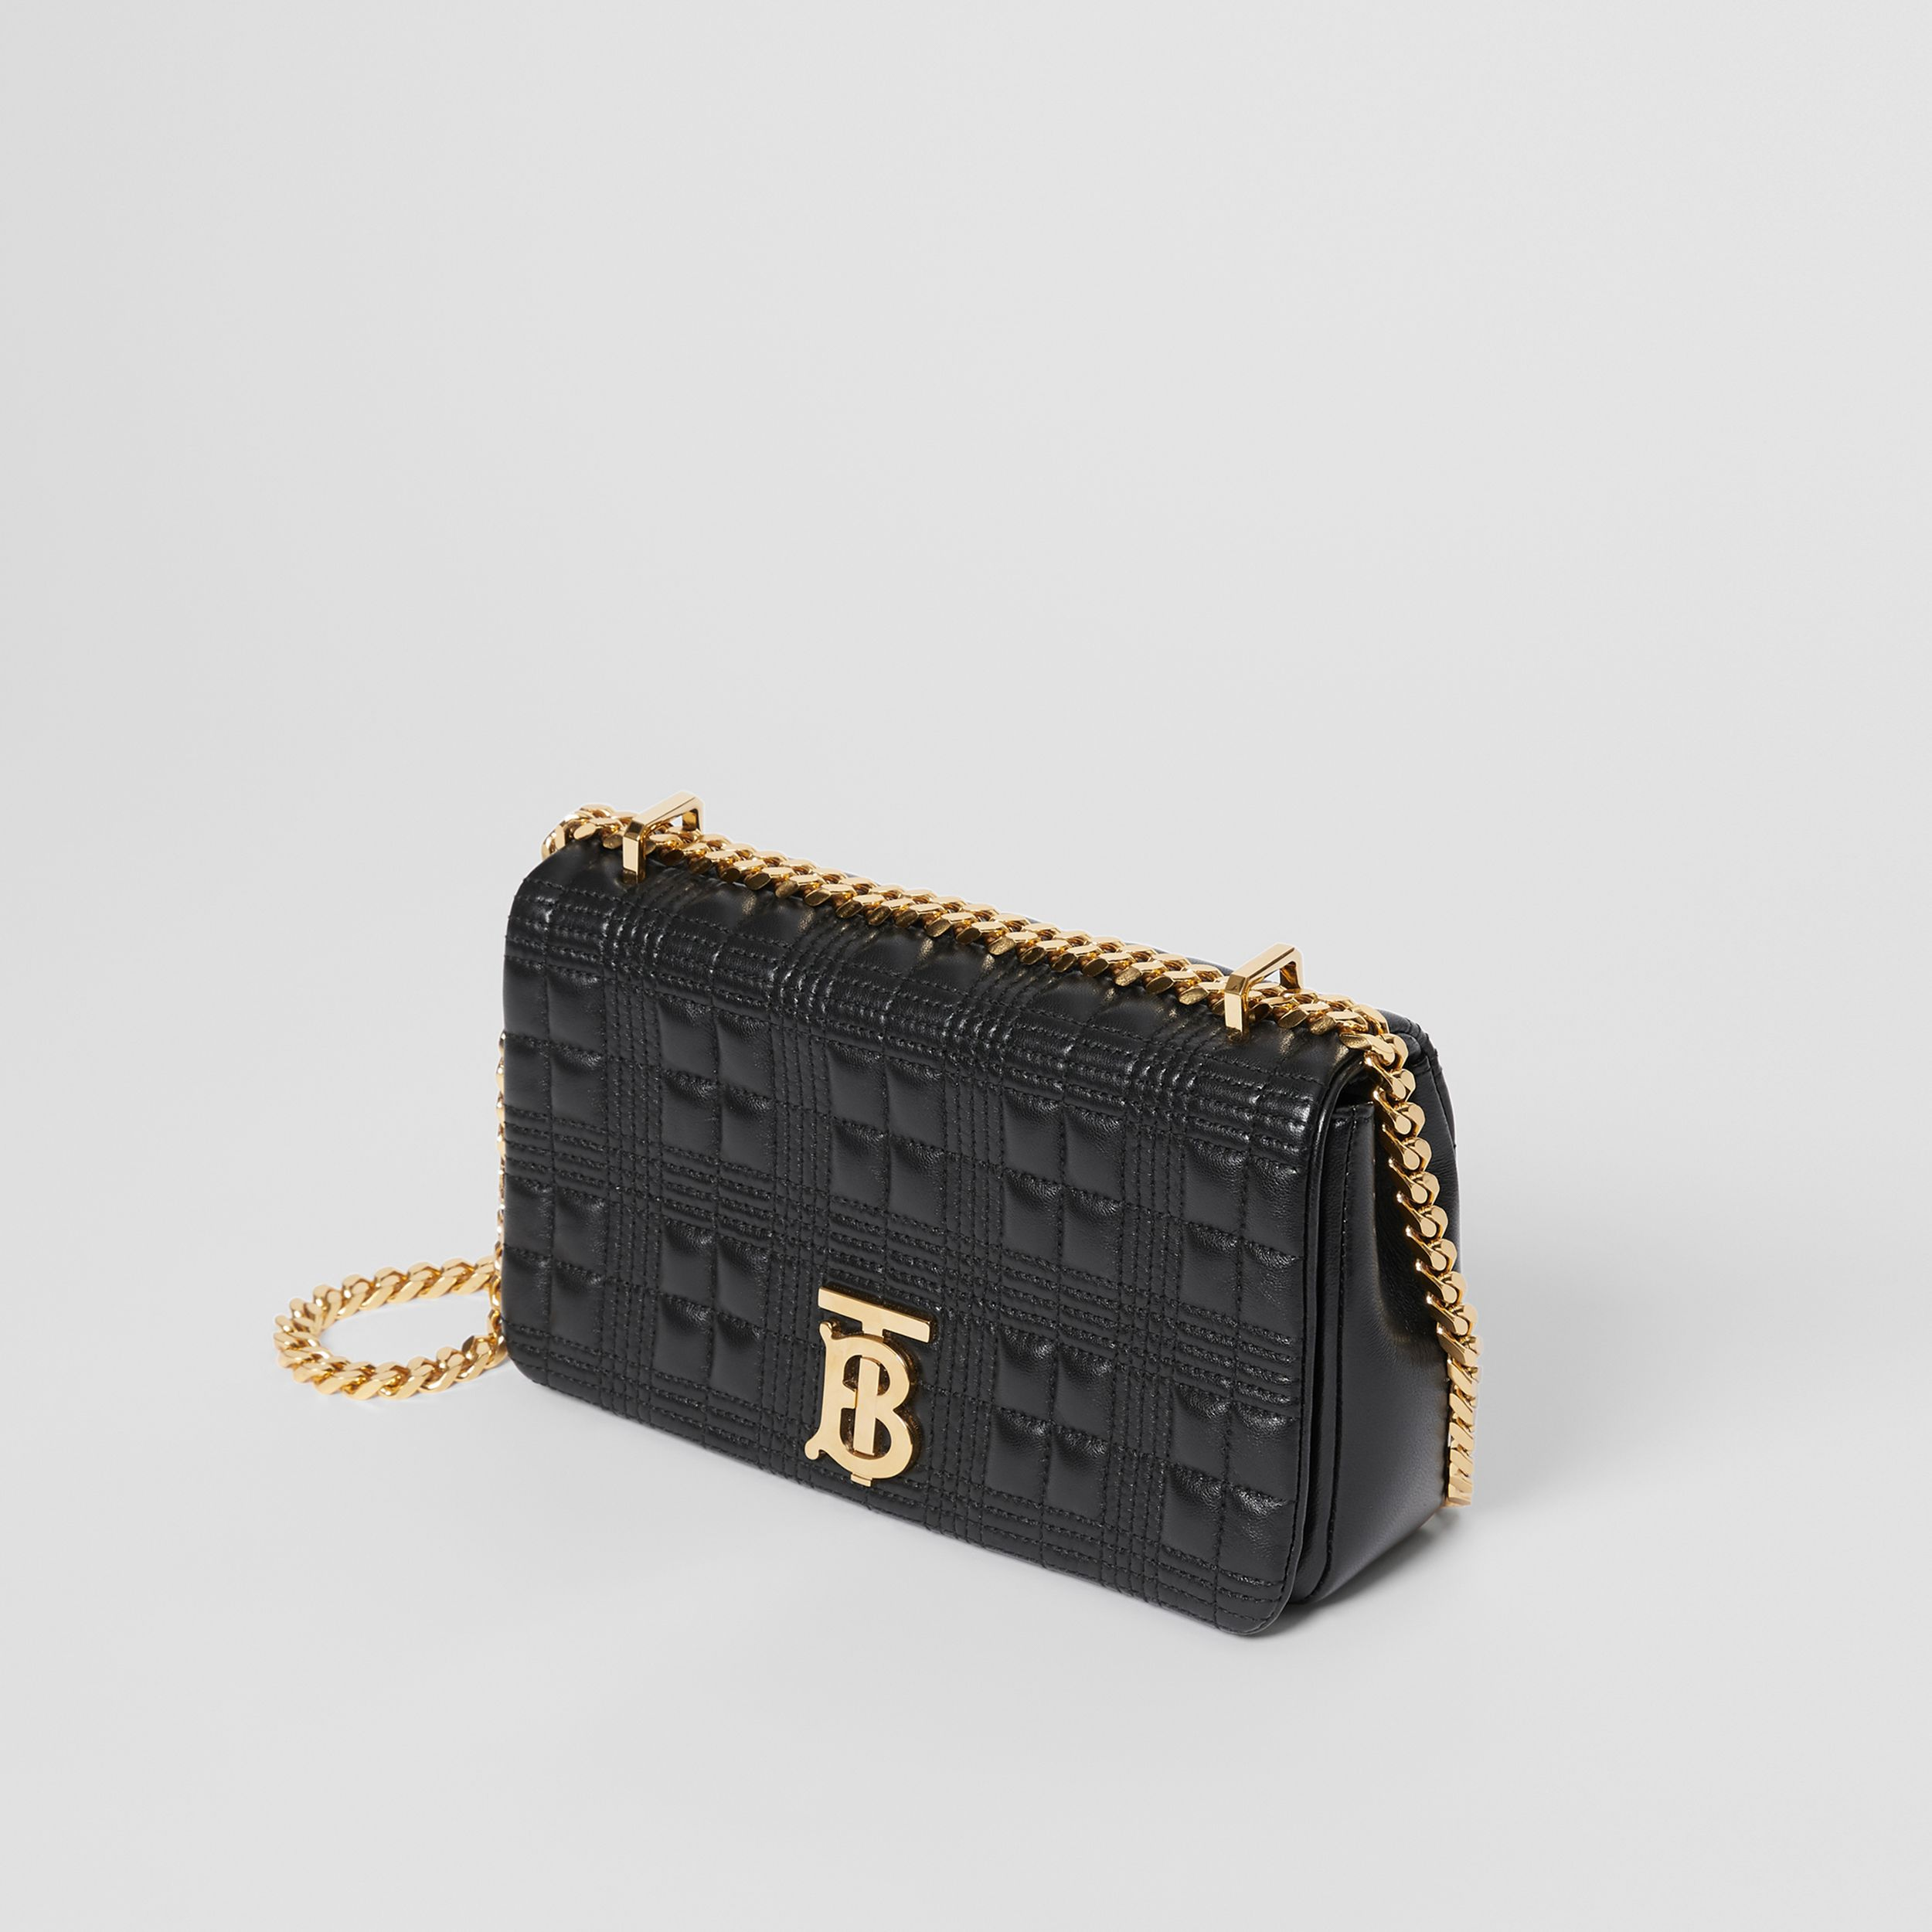 Small Quilted Lambskin Lola Bag in Black/light Gold | Burberry - 4